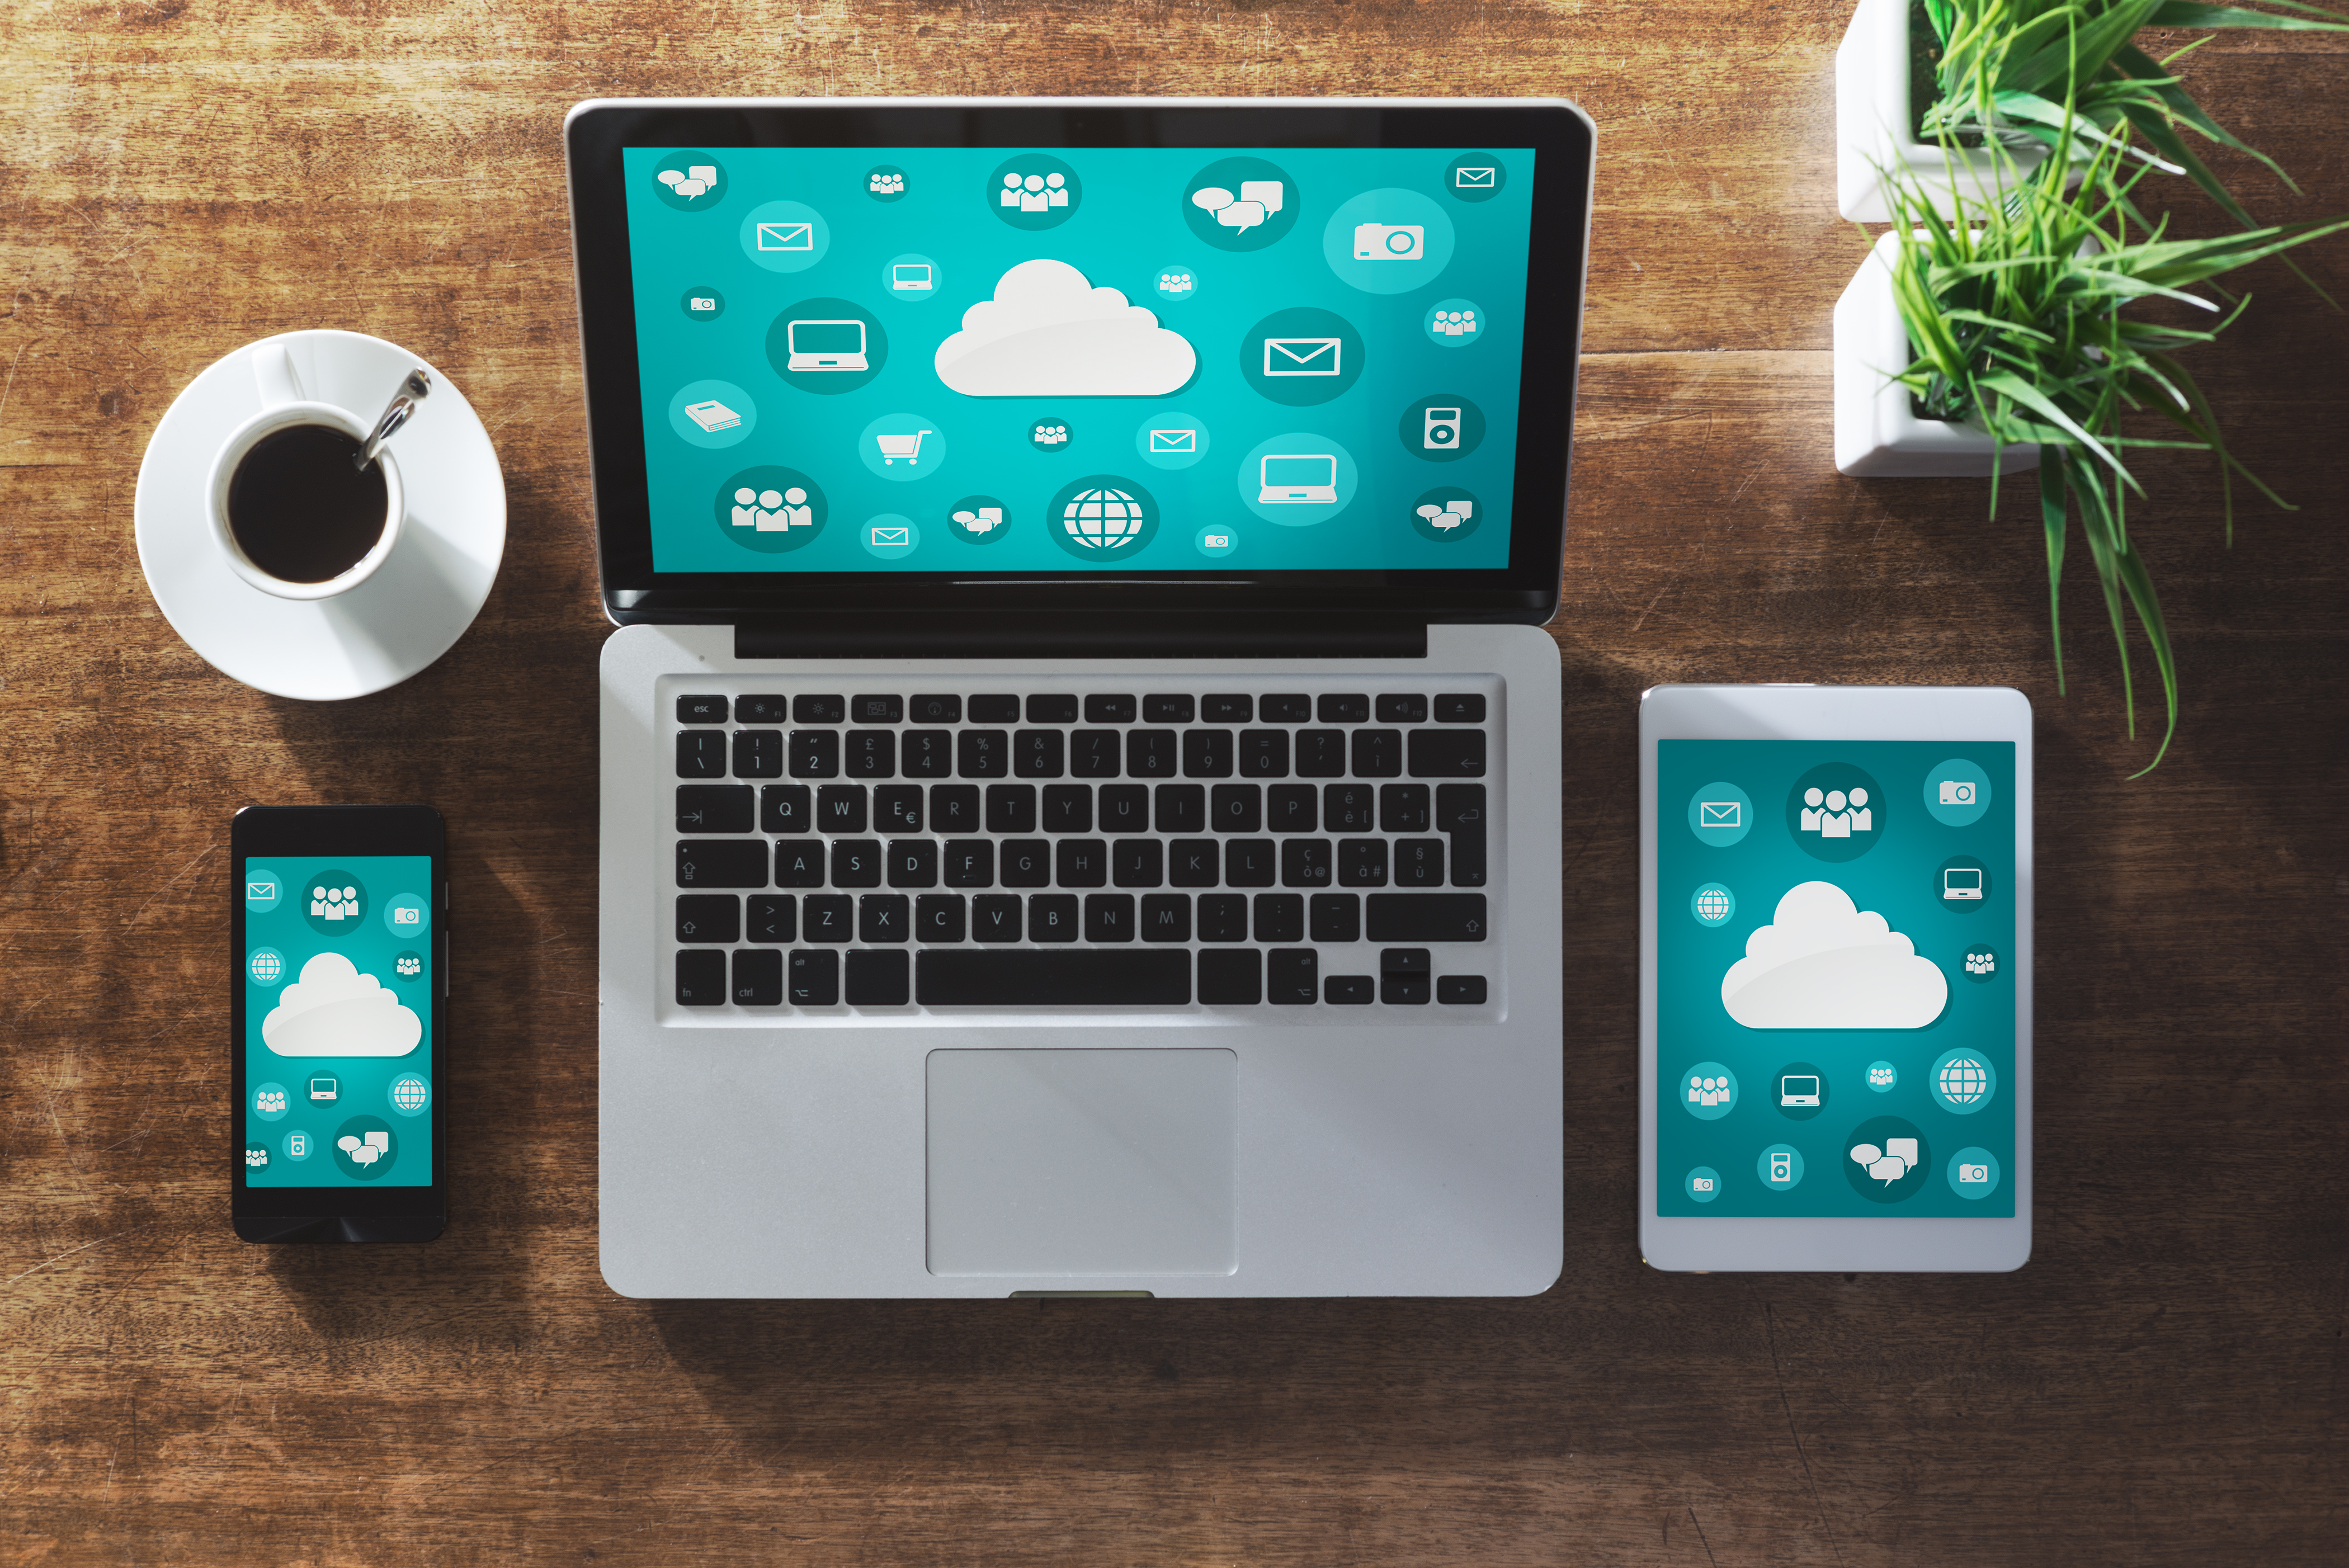 Hosting your apps in the cloud